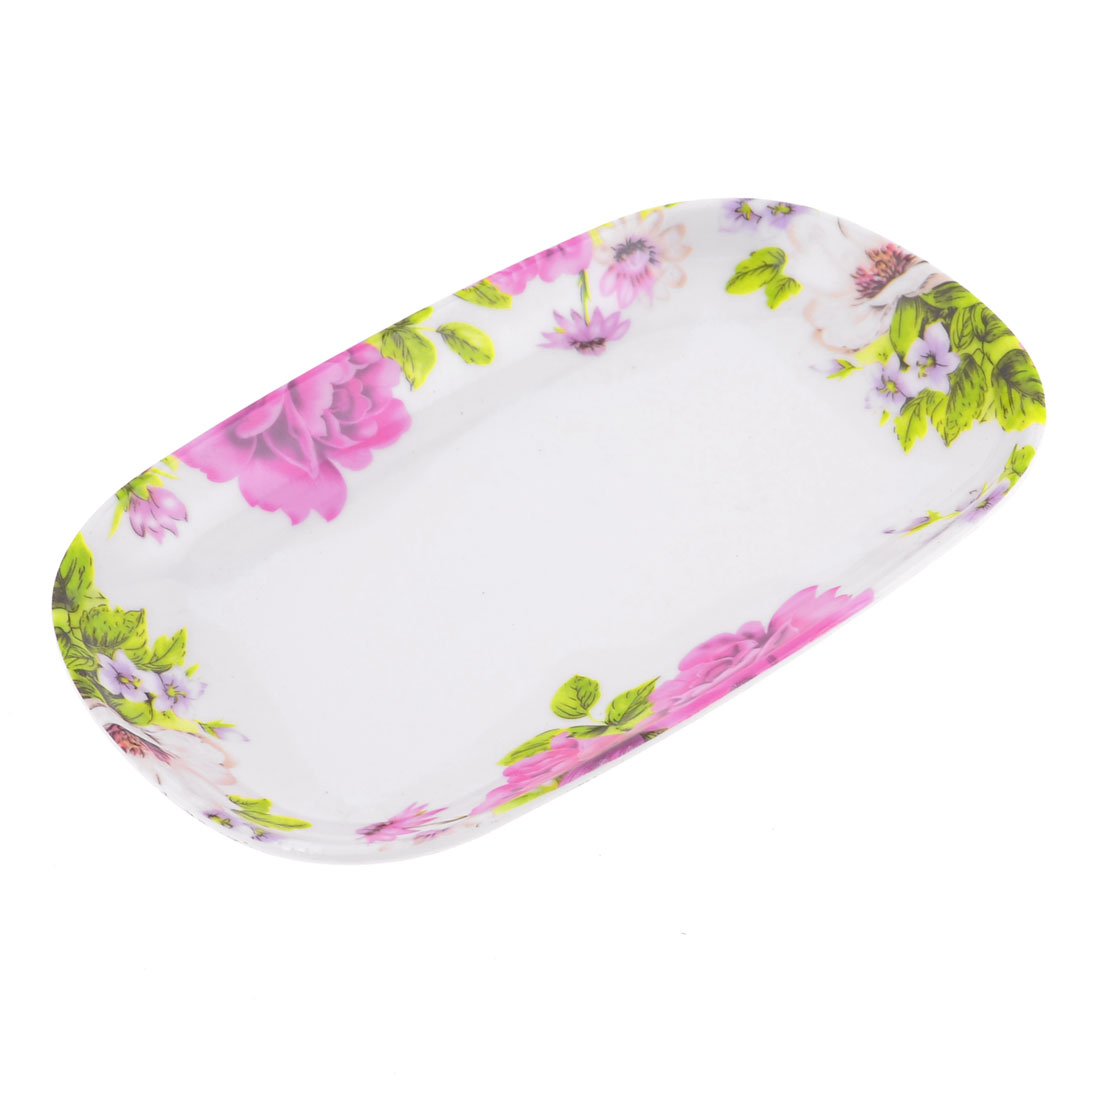 Yellow Leaves Print Rectangle Plastic Biscuit Fruit Dish Plate Holder